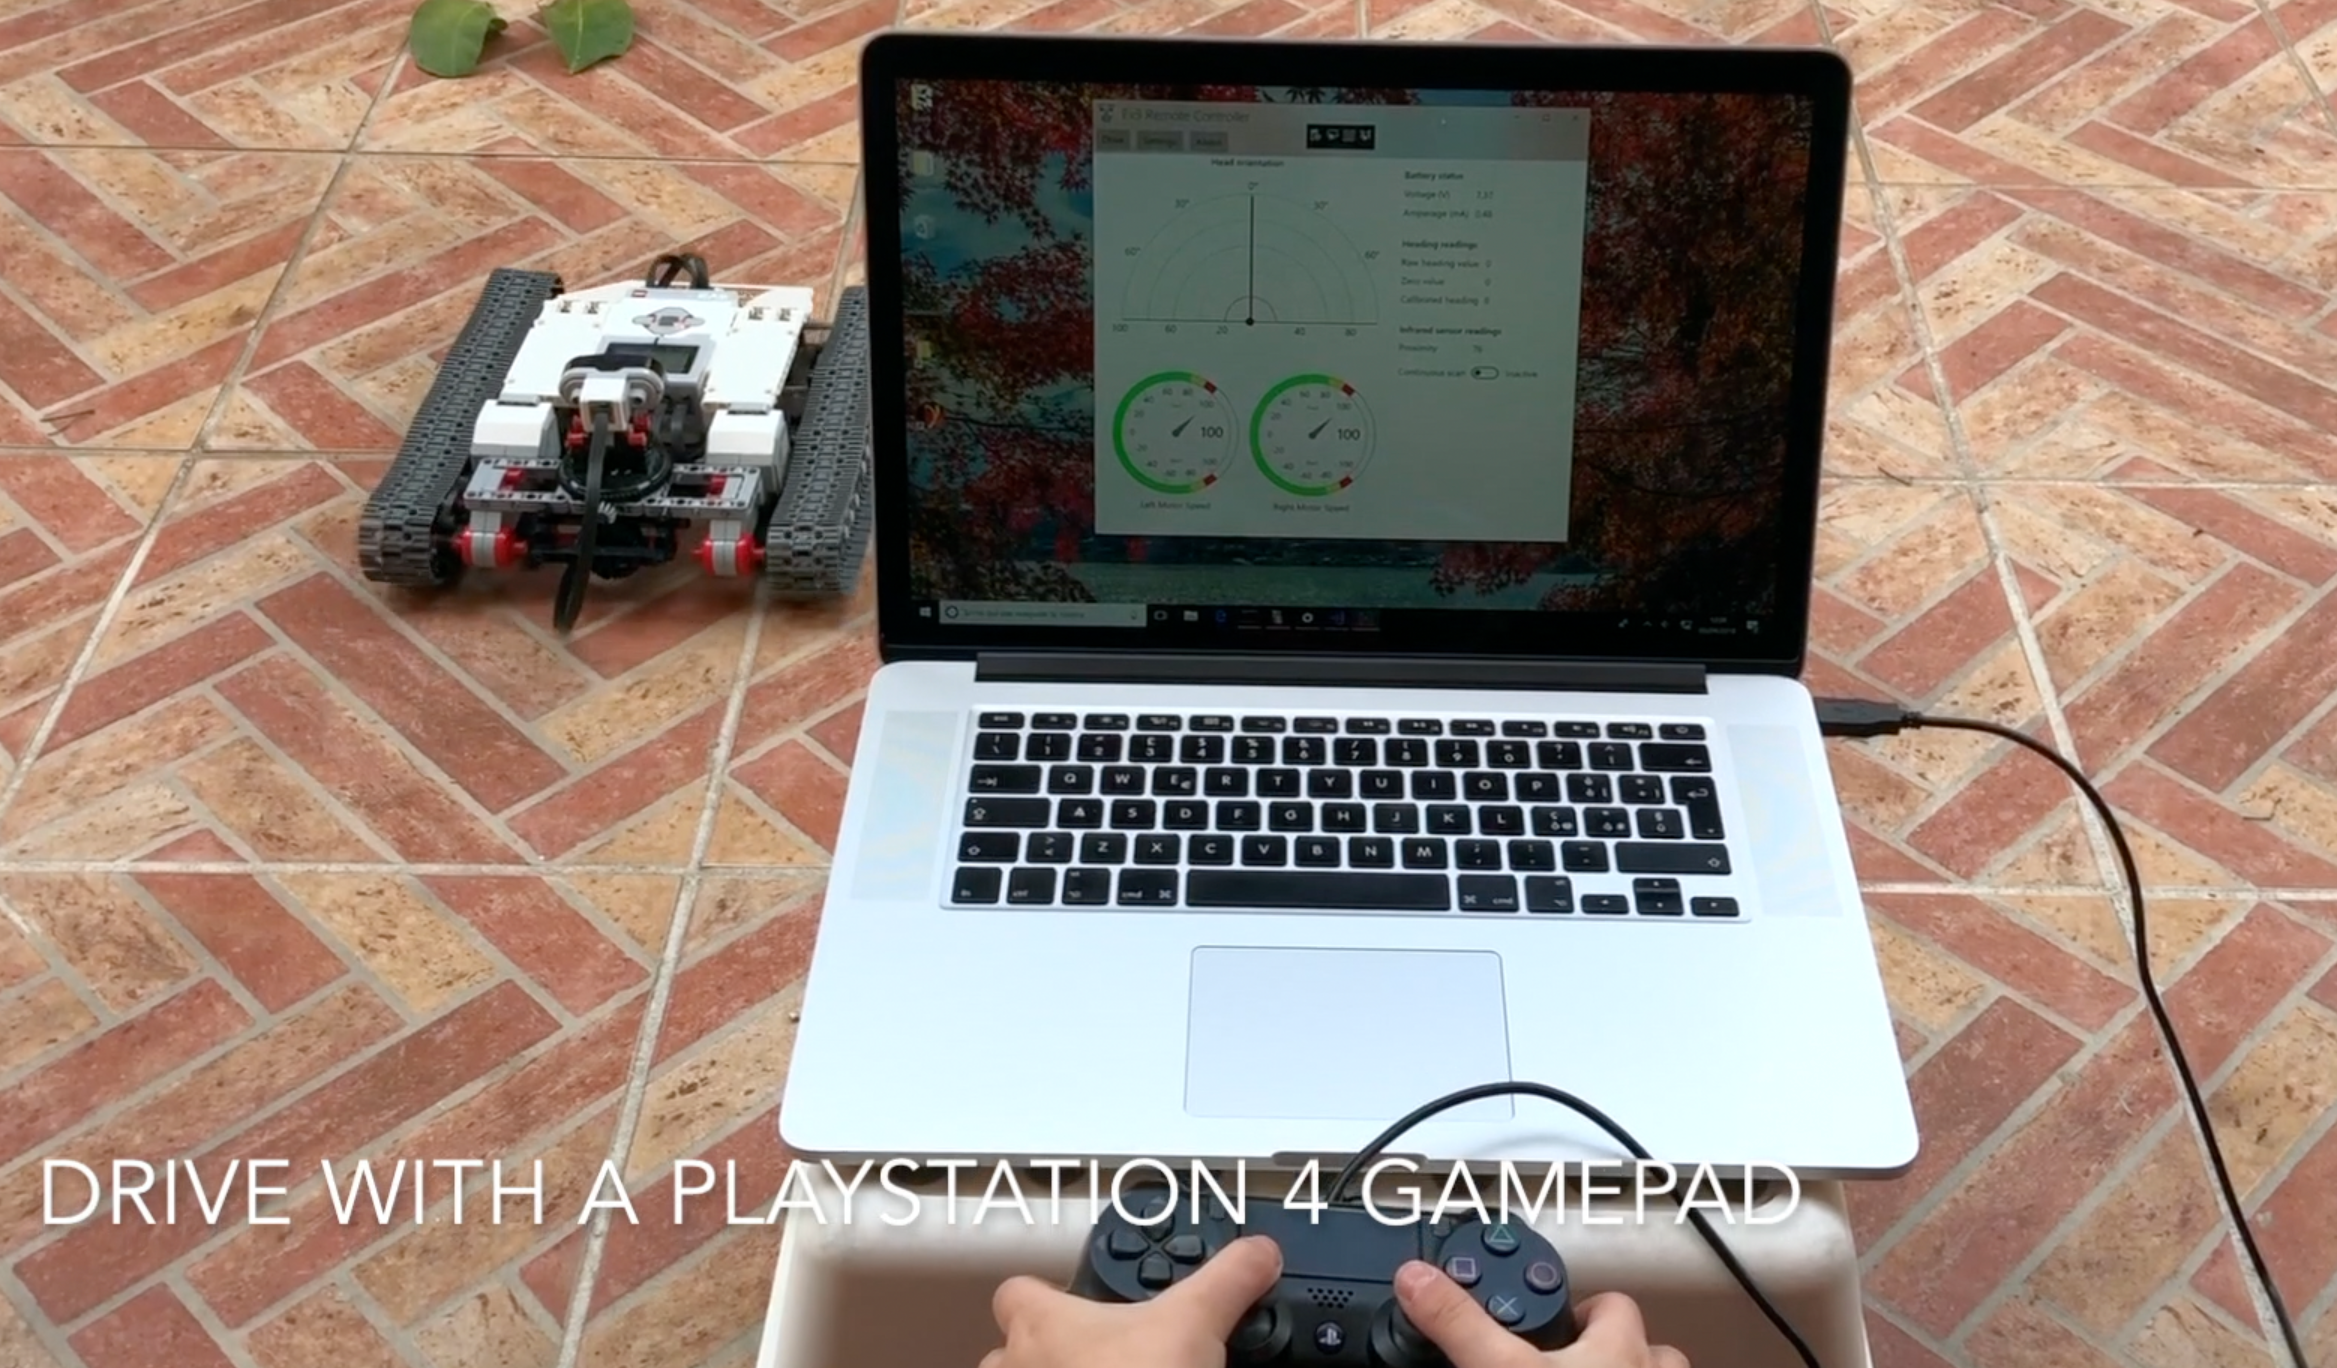 Ev3 Tracked Explorer video